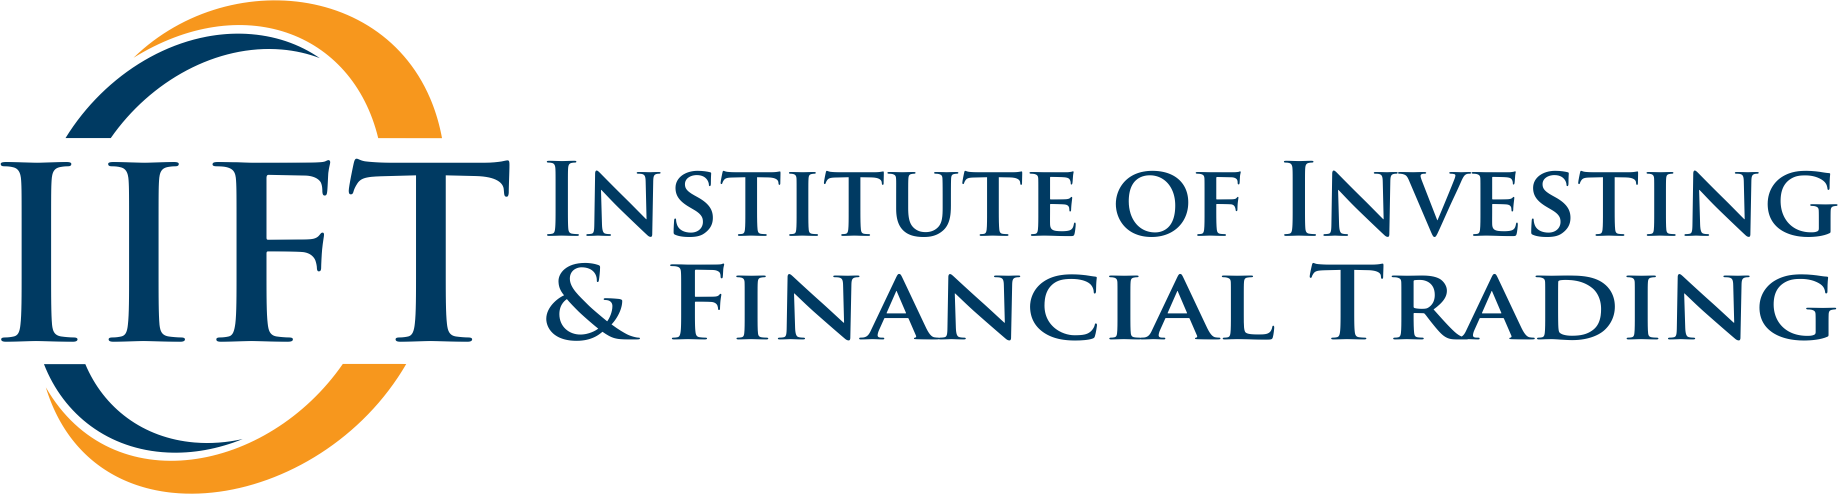 Institute of Investing & Financial Trading